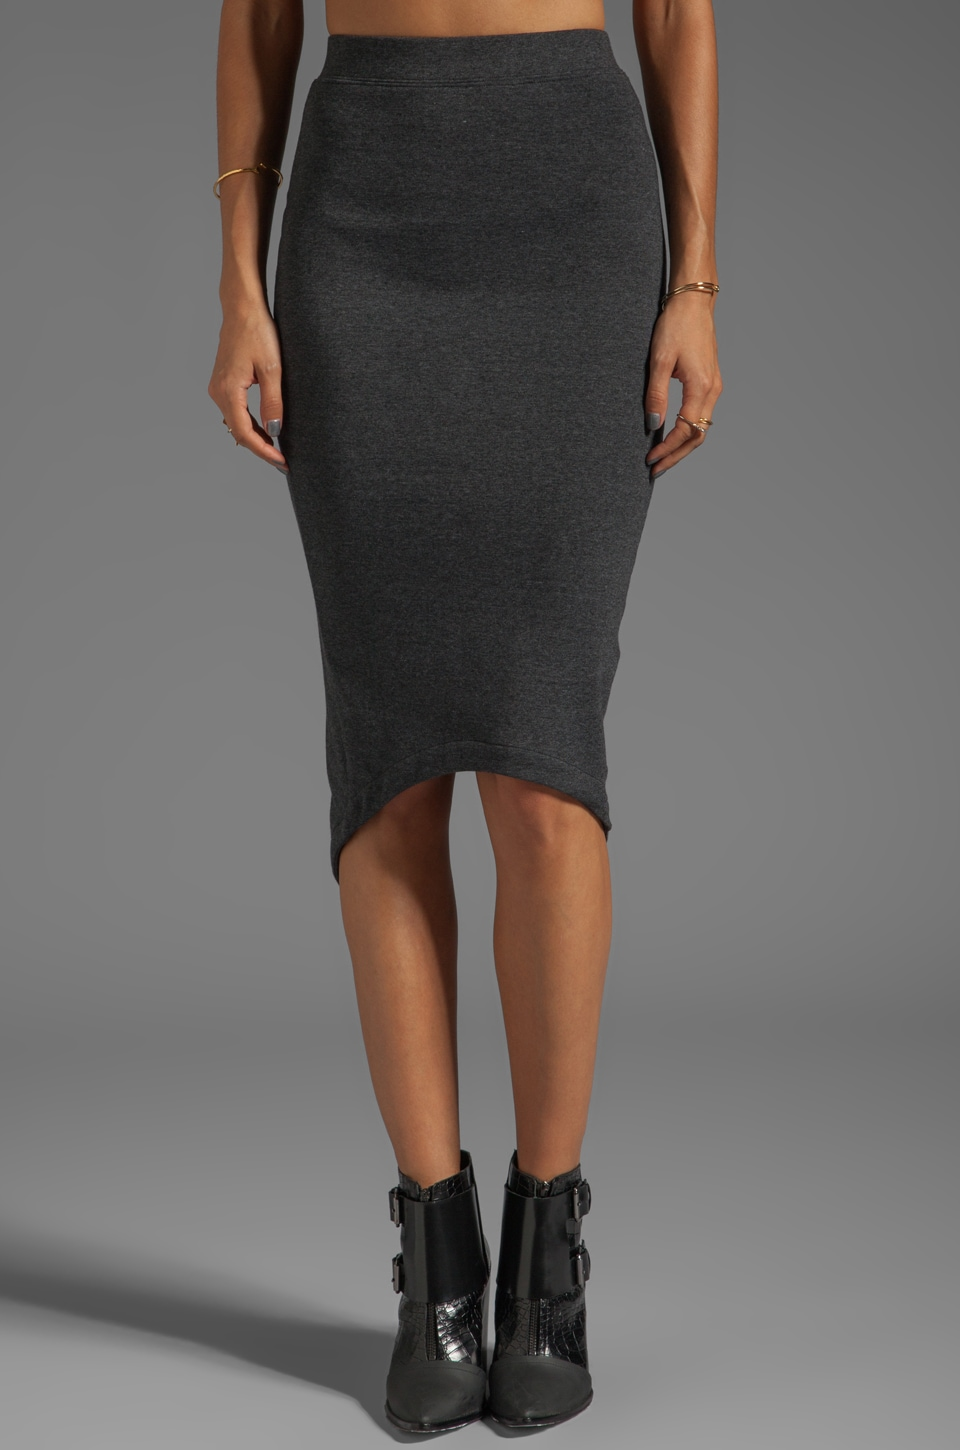 Funktional Storm Crossed Pencil Skirt in Charcoal